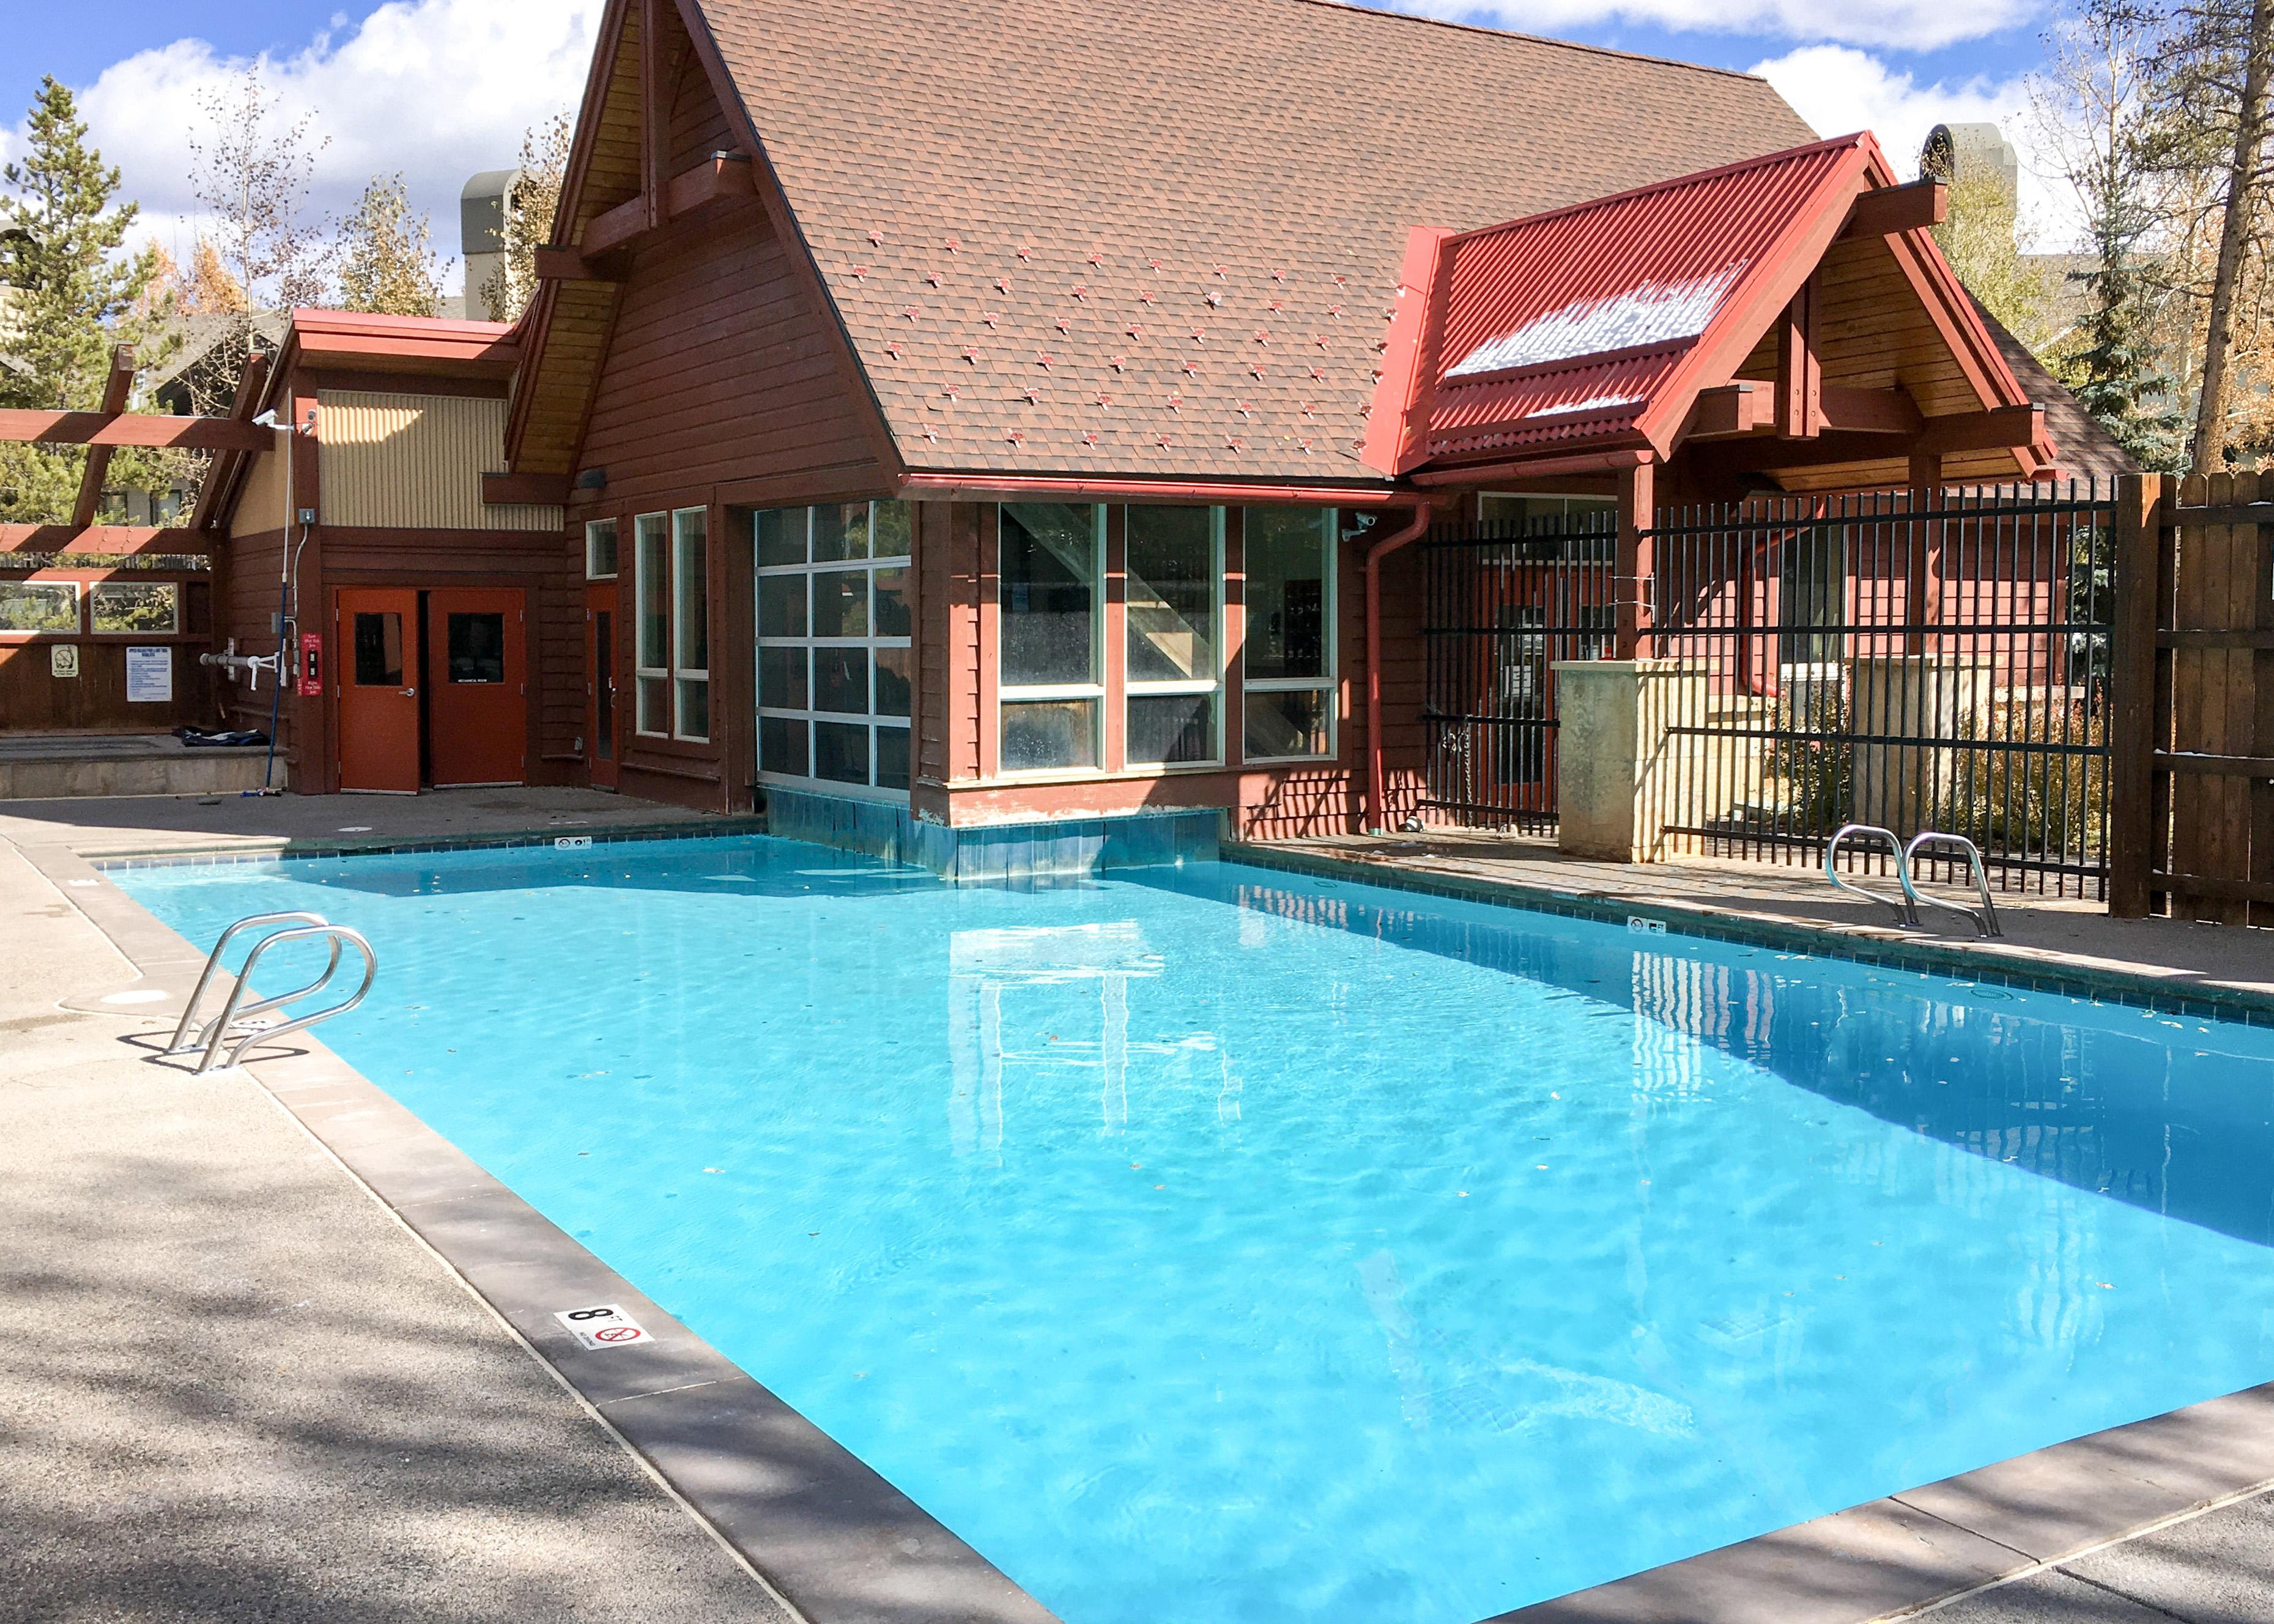 Property Image 2 - Rustic & Stylish, Ski-In/Out Condo with Pool & Hot Tub Access